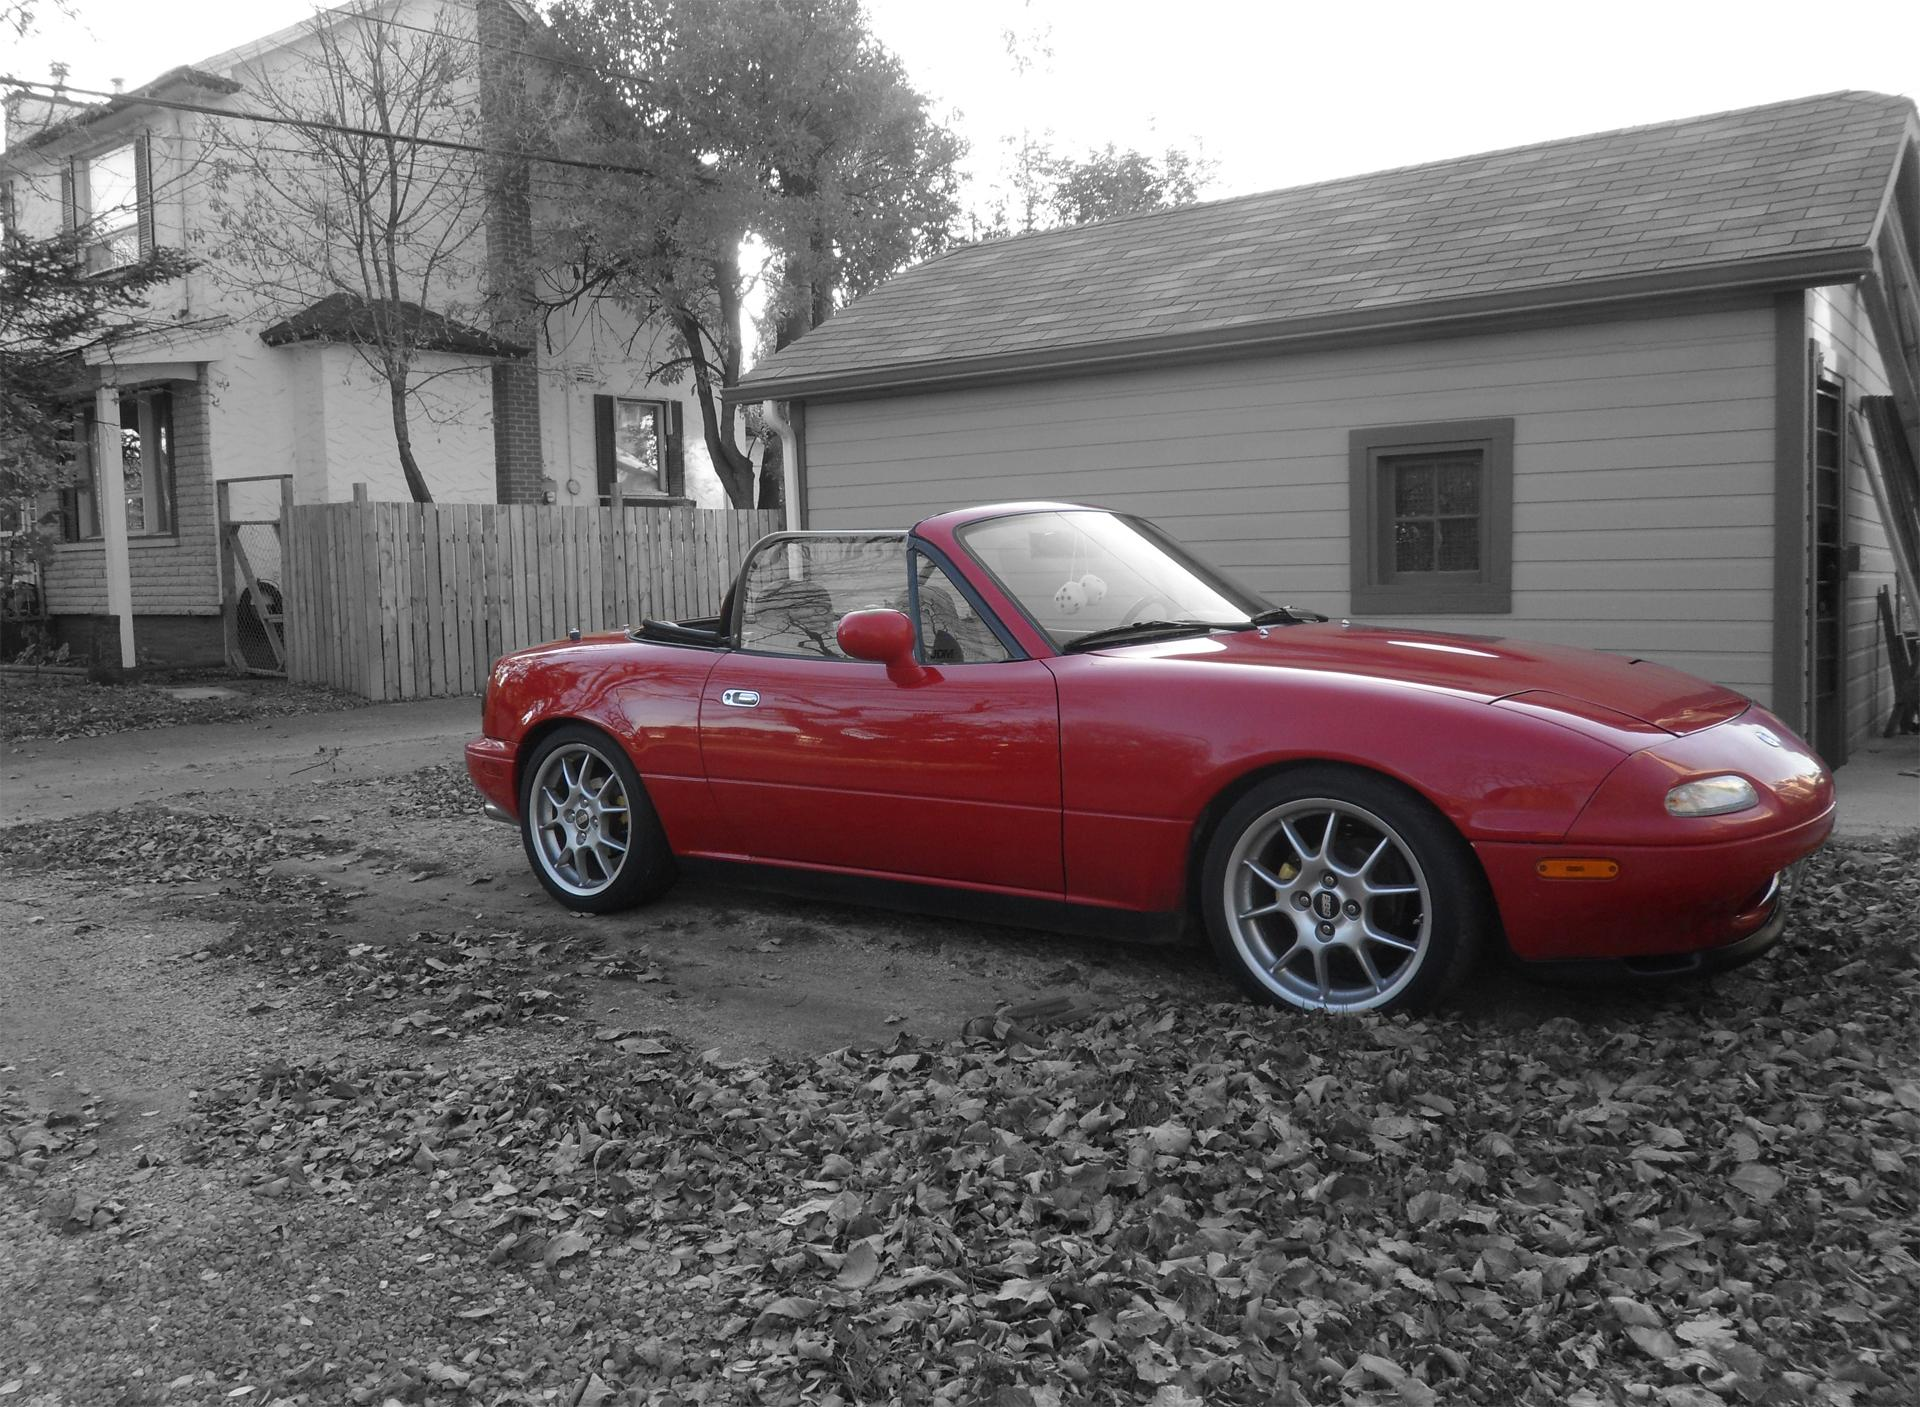 gspec15 1993 mazda miata mx-5convertible 2d specs, photos